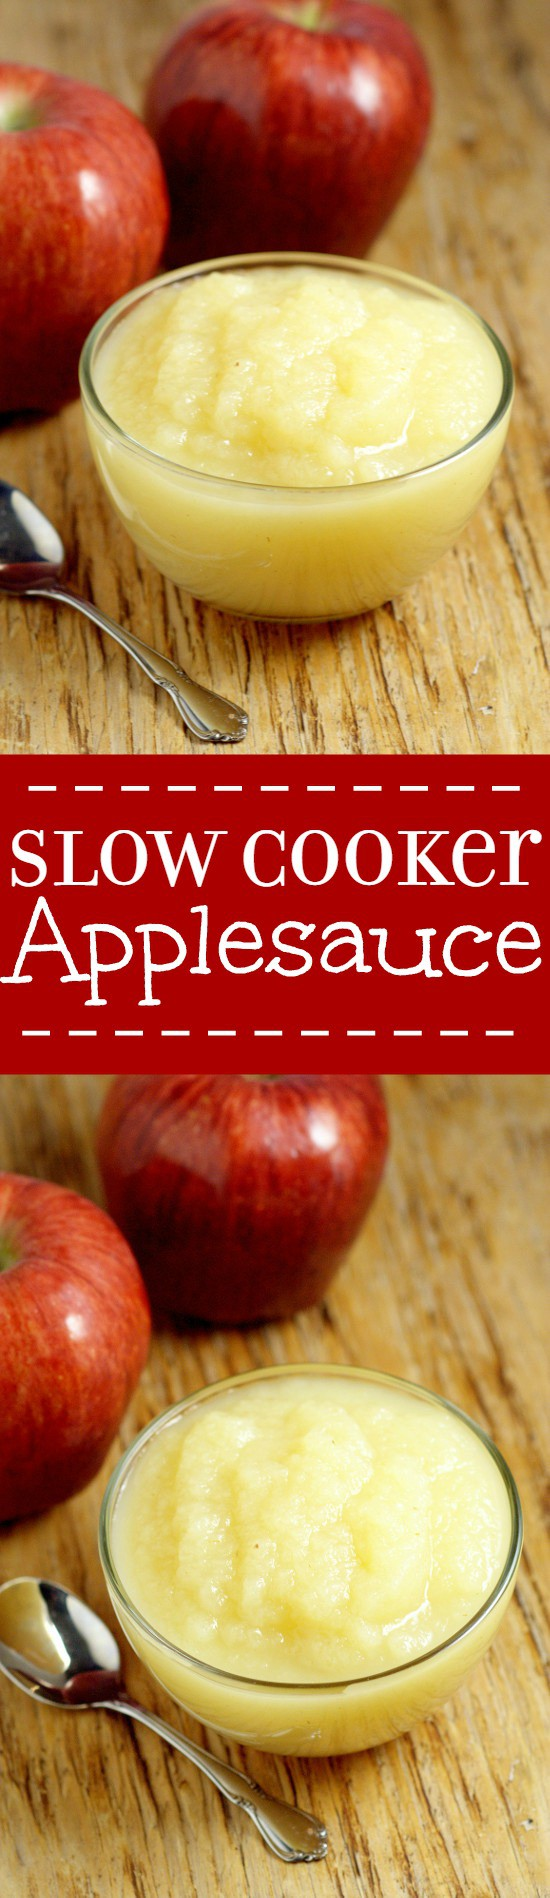 Making your own Slow Cooker Applesauce couldn't be easier with just ONE ingredient!  A healthy and delicious snack recipe for kids that's easy to make, right in your Crockpot! Freezer friendly too! Perfect! Love that you know EXACTLY what's in it!